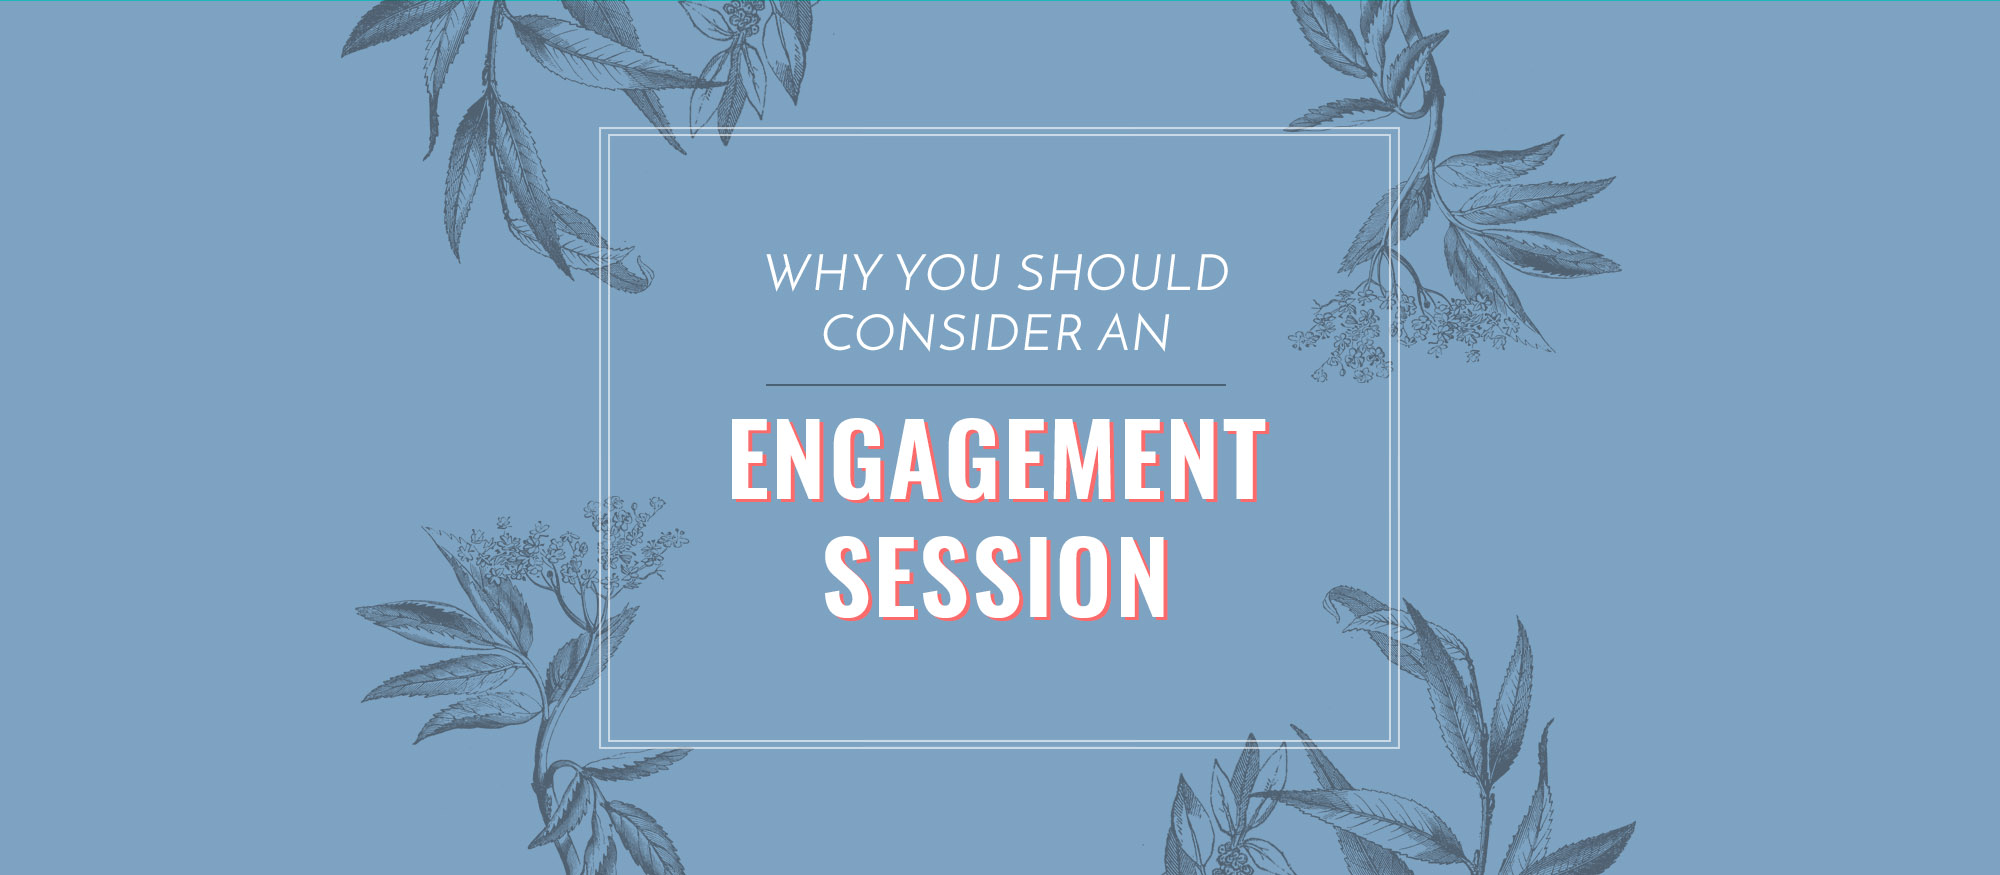 why-you-should-consider-an-engagement-session